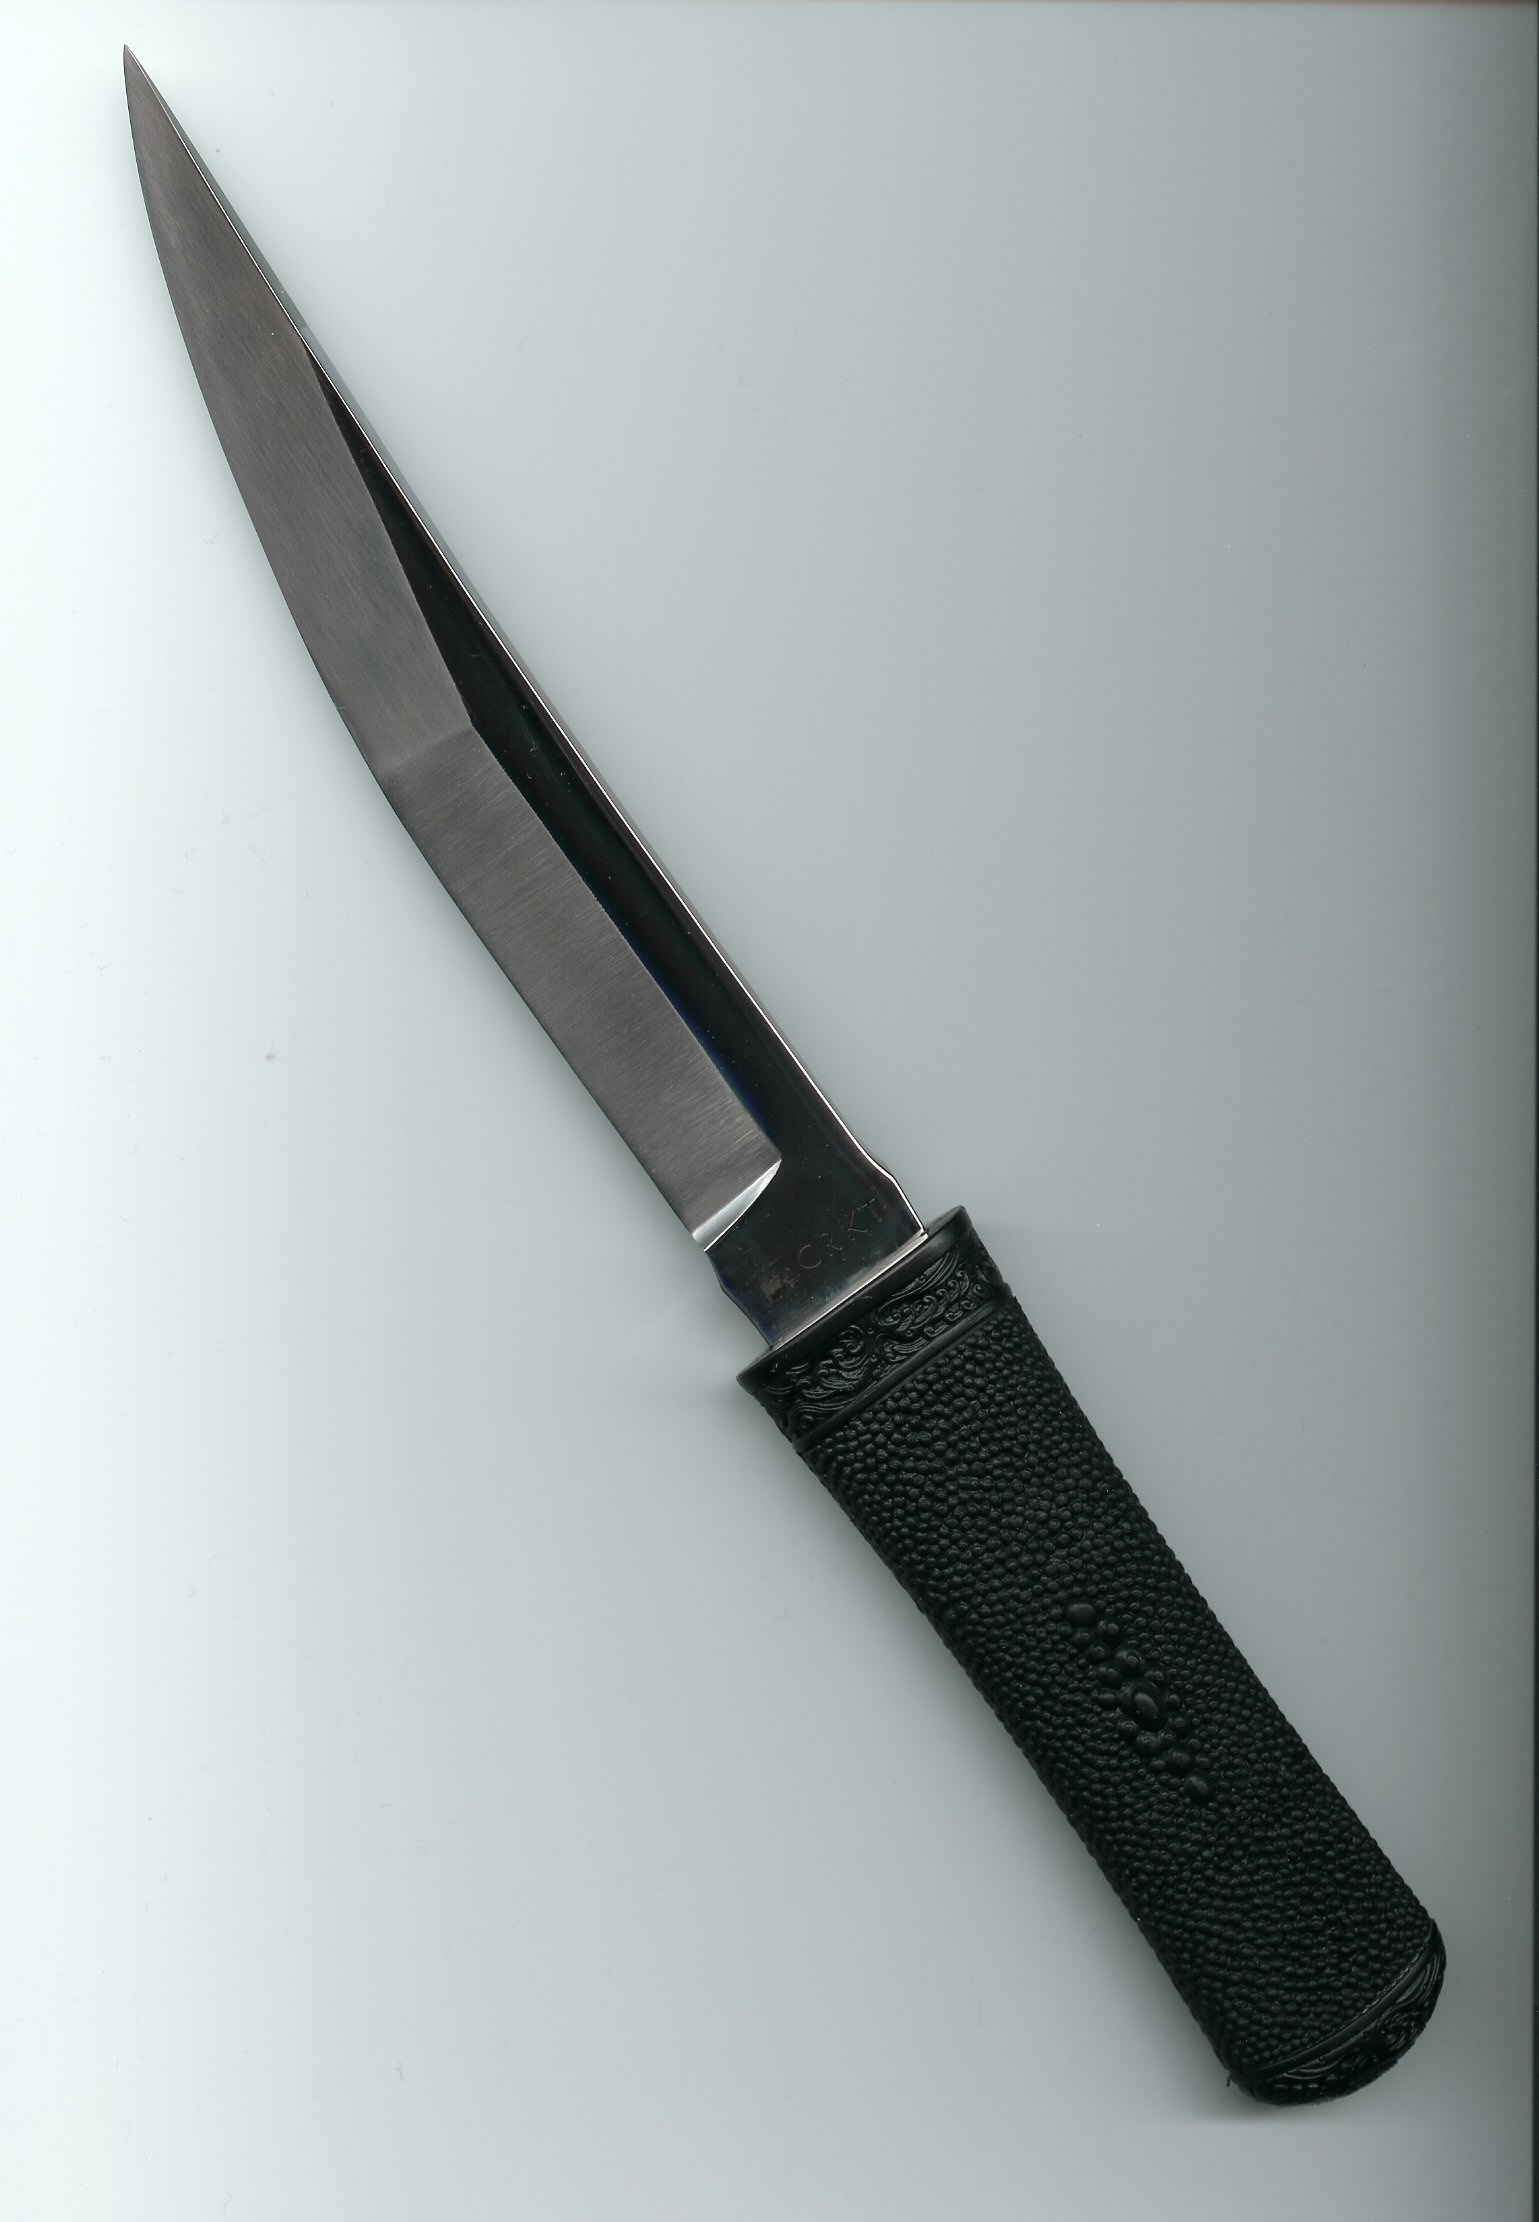 Hissatsu 2 <!  :en  >Hissatsu Combat/Tactical Tanto Knife: A Japanese Style Solution for Modern Spec Ops/Tactical CQB Problems.<!  :  >